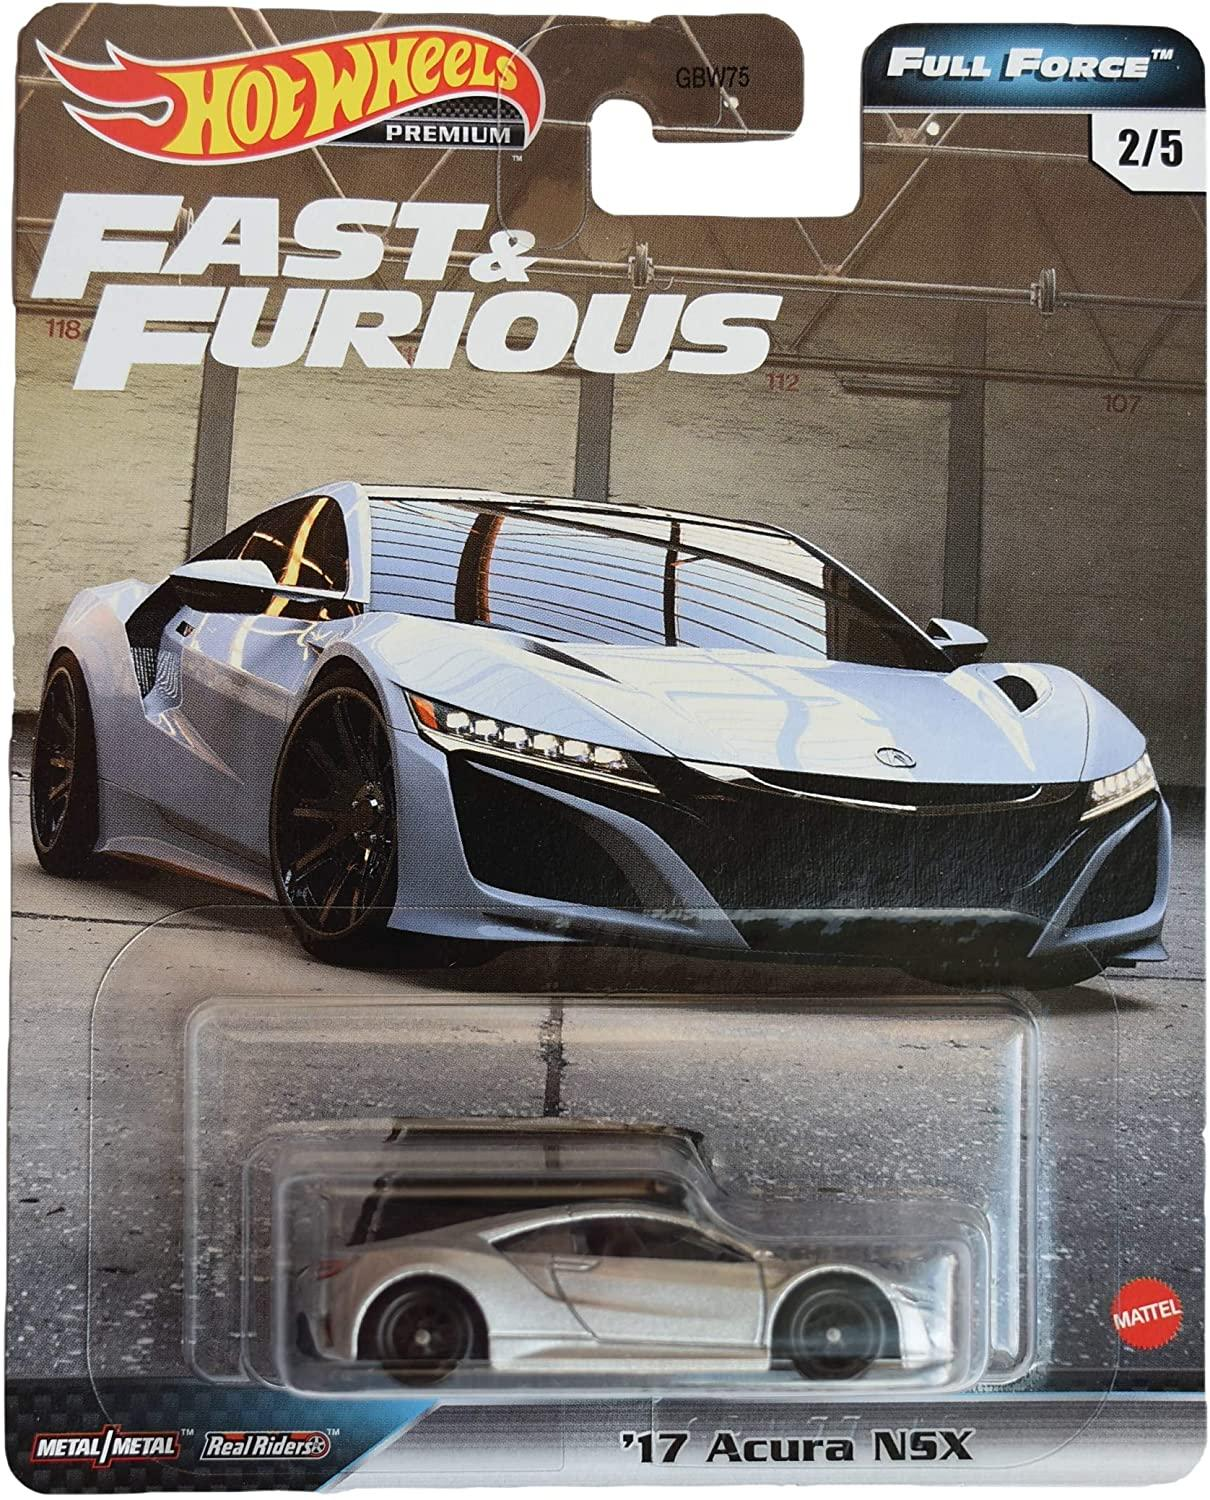 Hot Wheels Full Force Real Riders Fast And Furious '17 Acura NSX 2/5 (GJR75/GBW75)